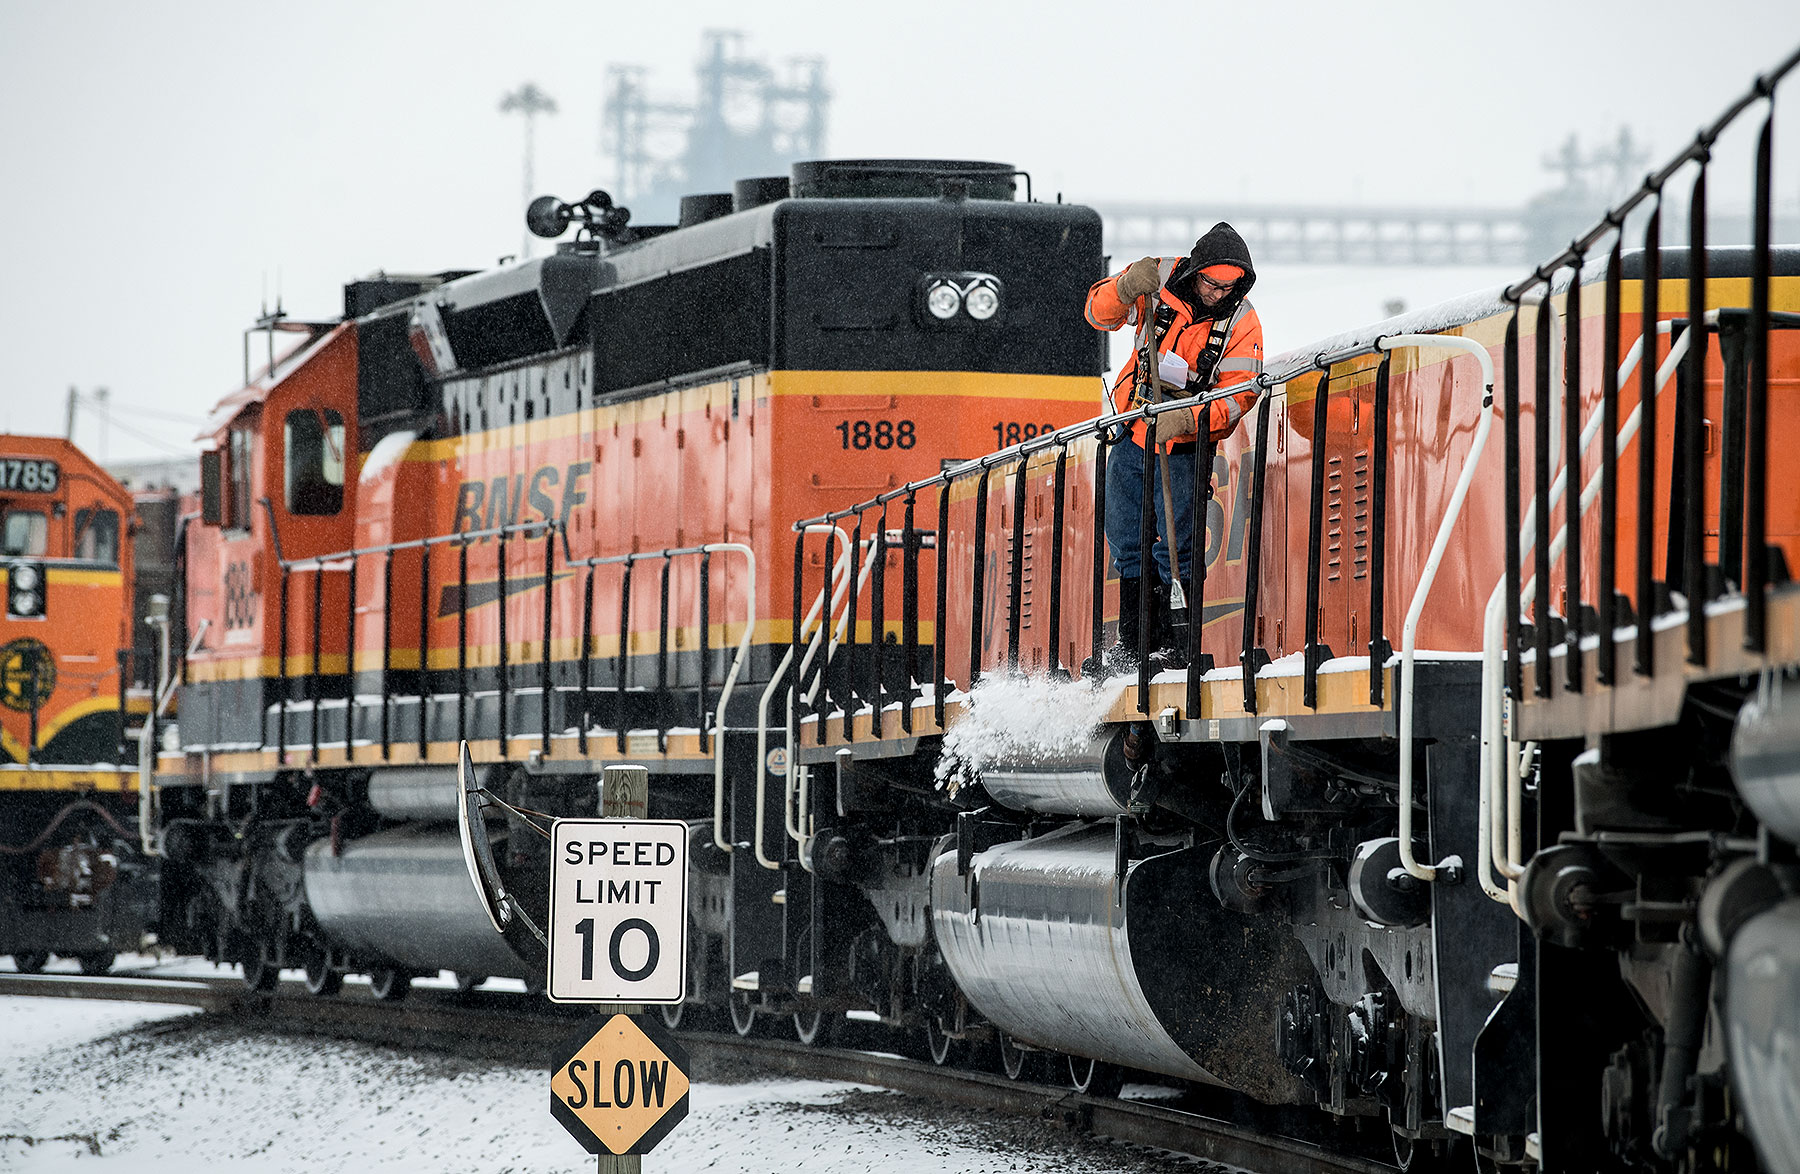 Train Engines in Snow Photo